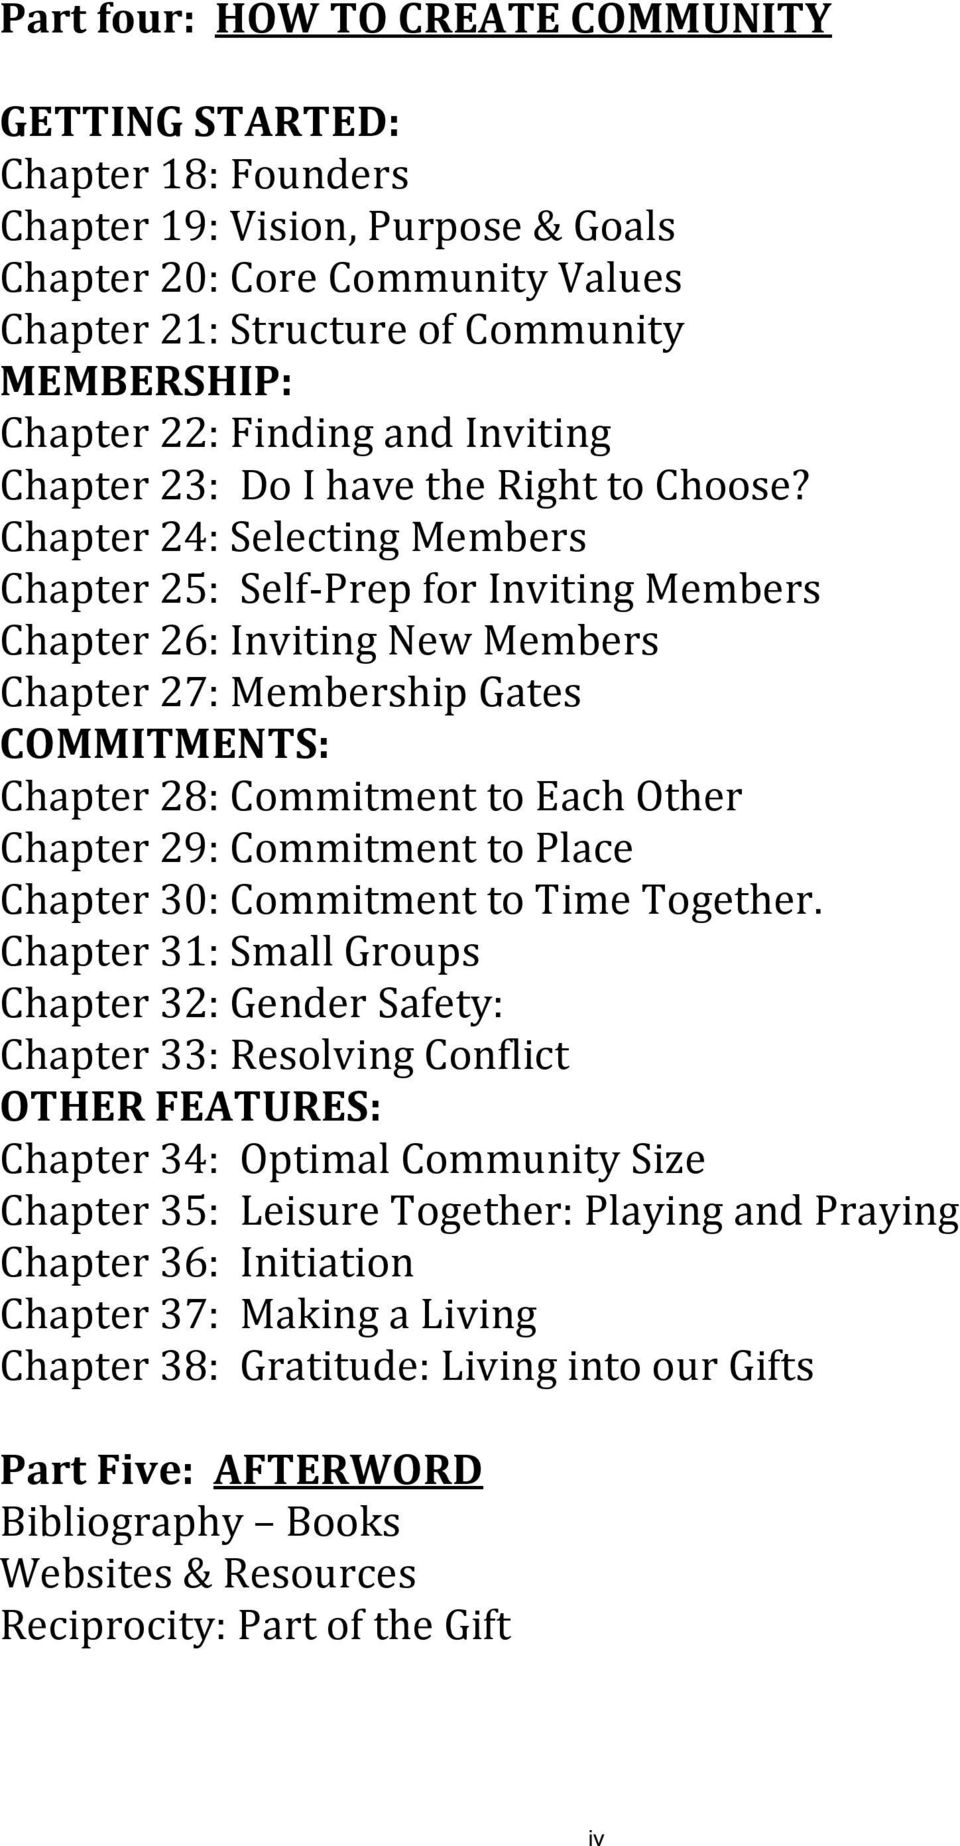 Chapter 24: Selecting Members Chapter 25: Self- Prep for Inviting Members Chapter 26: Inviting New Members Chapter 27: Membership Gates COMMITMENTS: Chapter 28: Commitment to Each Other Chapter 29: